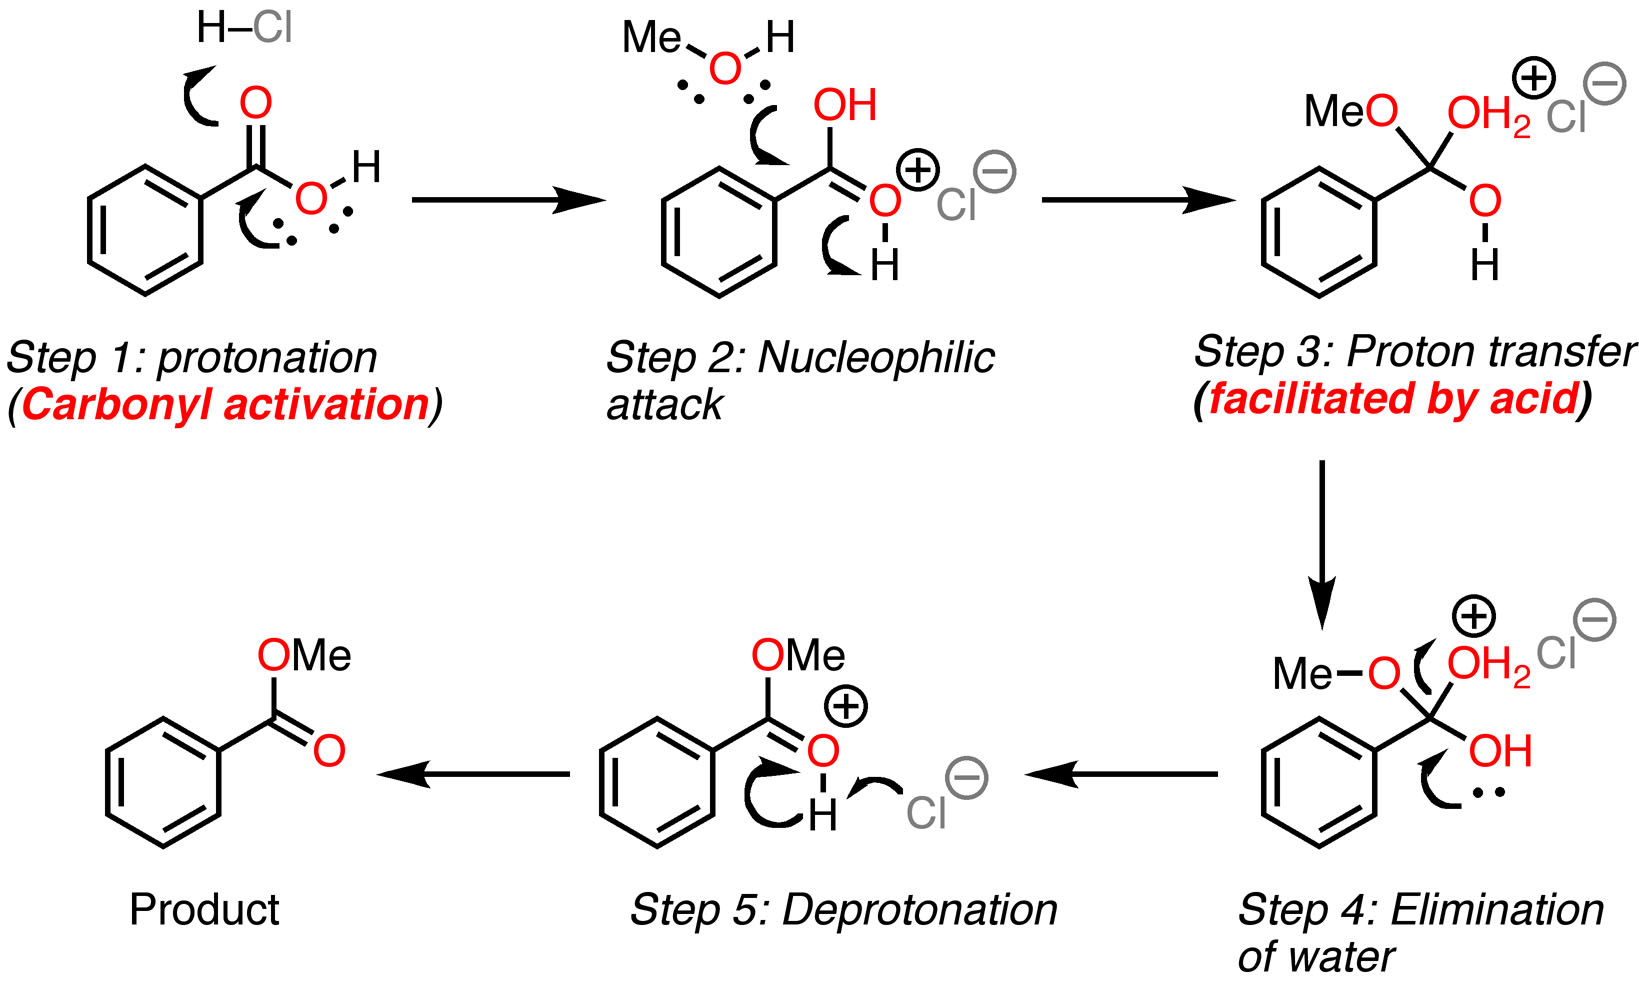 fischer esterification So my understanding is that protonation of the carbonyl carbon of a carboxylic acid makes the c more susceptible to nucleophilic attack, since the.